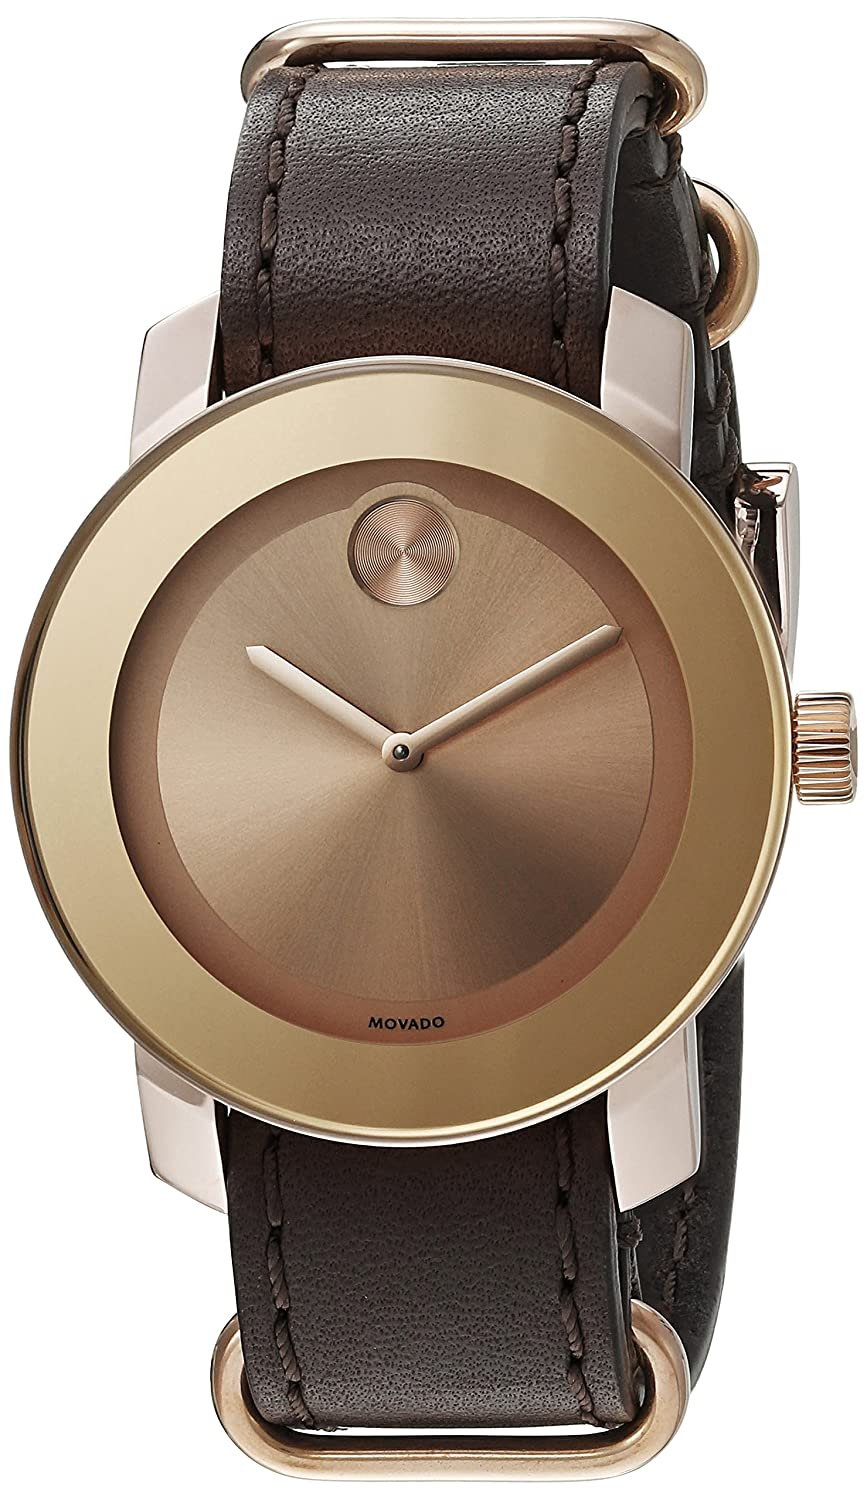 Movado Women 's Swiss Quartz Gold and BrownレザーCasual Watch ( Model : 3600364 ) B017VP3XLO